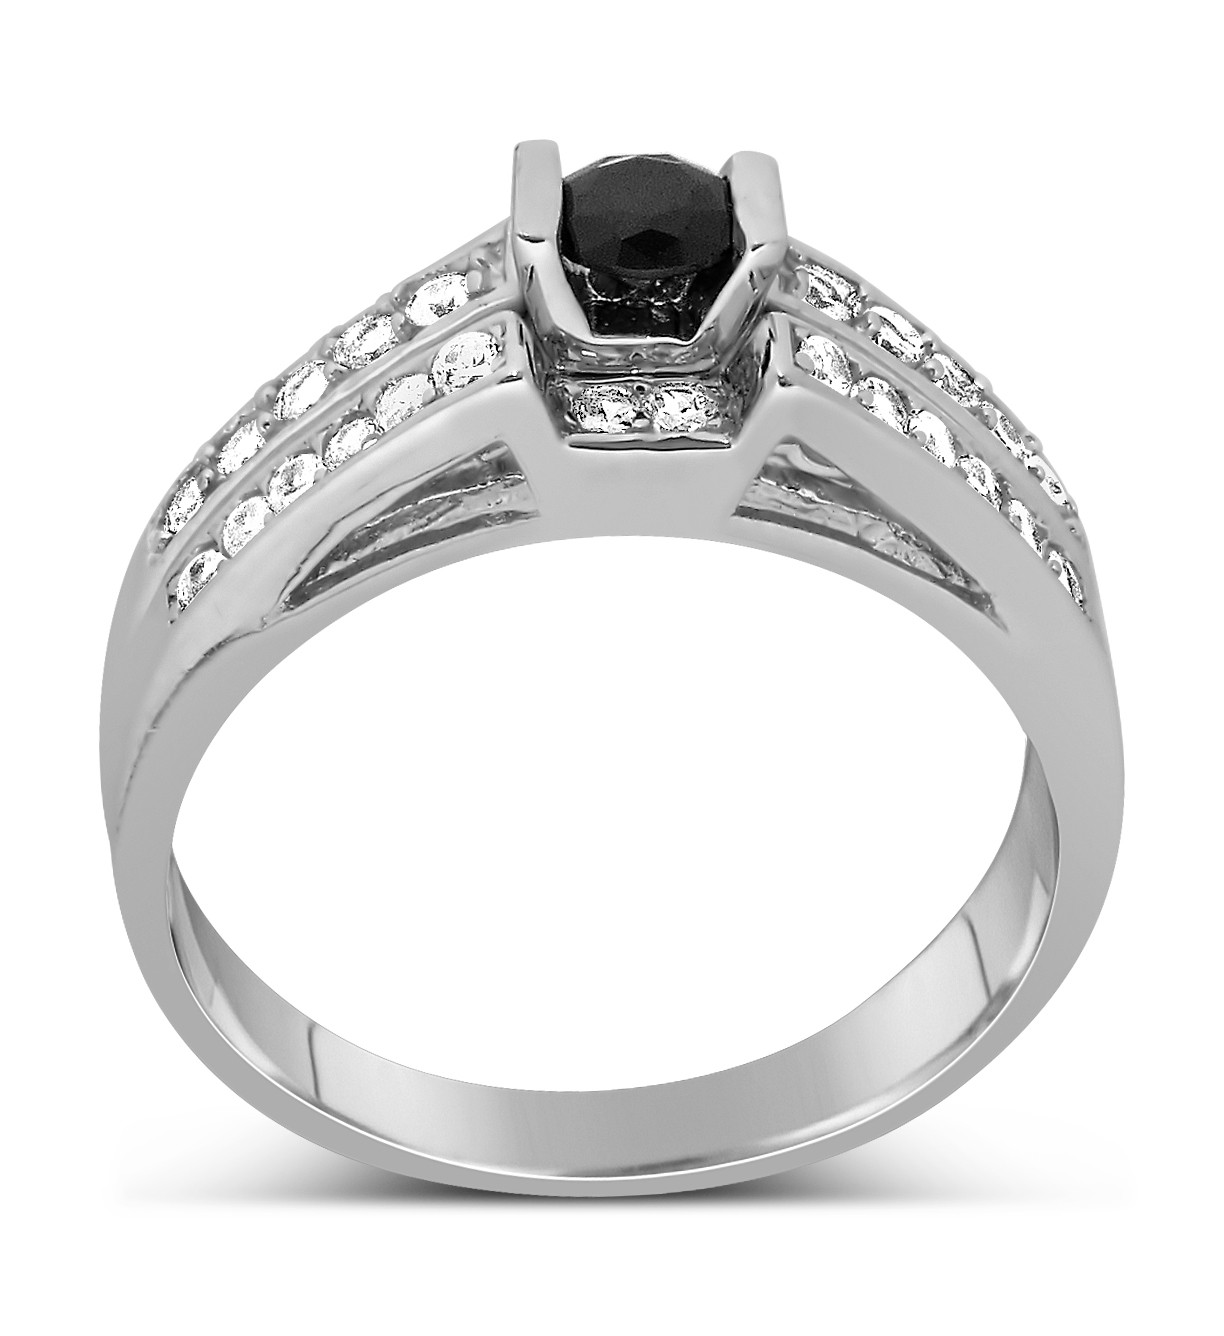 1 Carat Unique Black and White Round Diamond Wedding Ring Set in White Gold